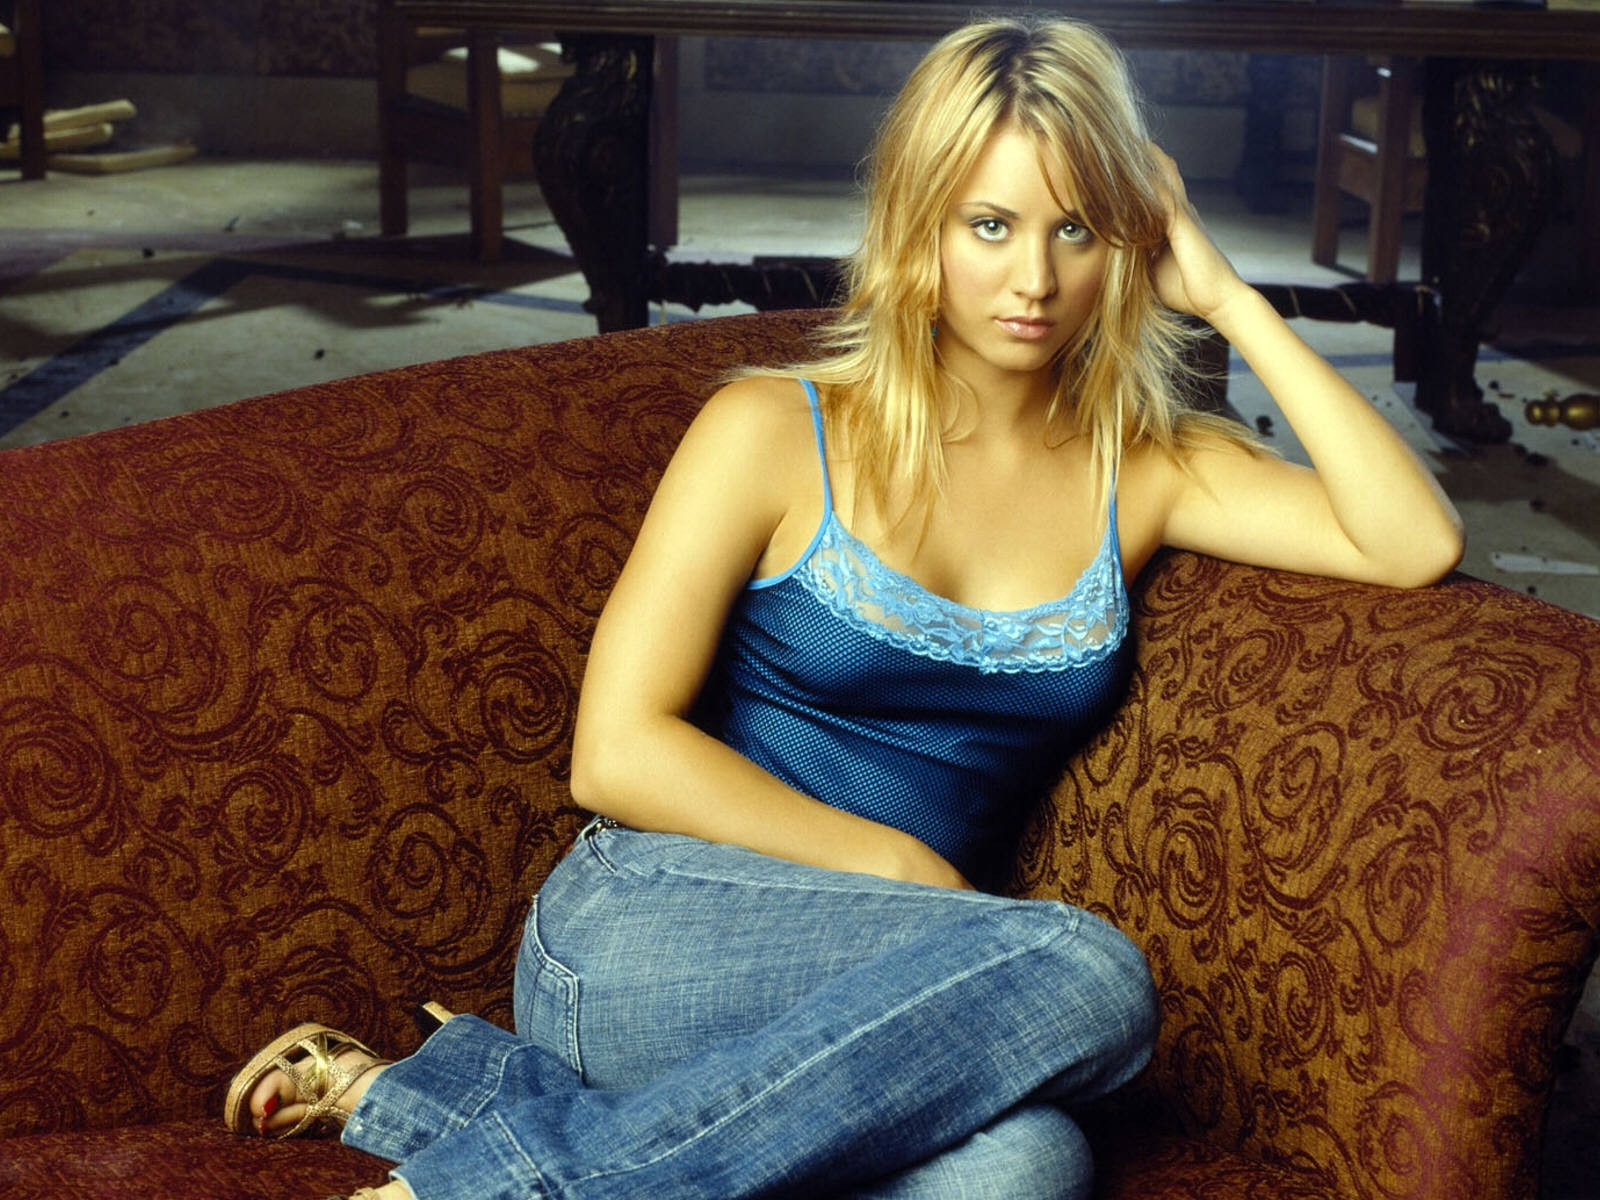 People 1600x1200 Kaley Cuoco blonde women actress couch celebrity jeans